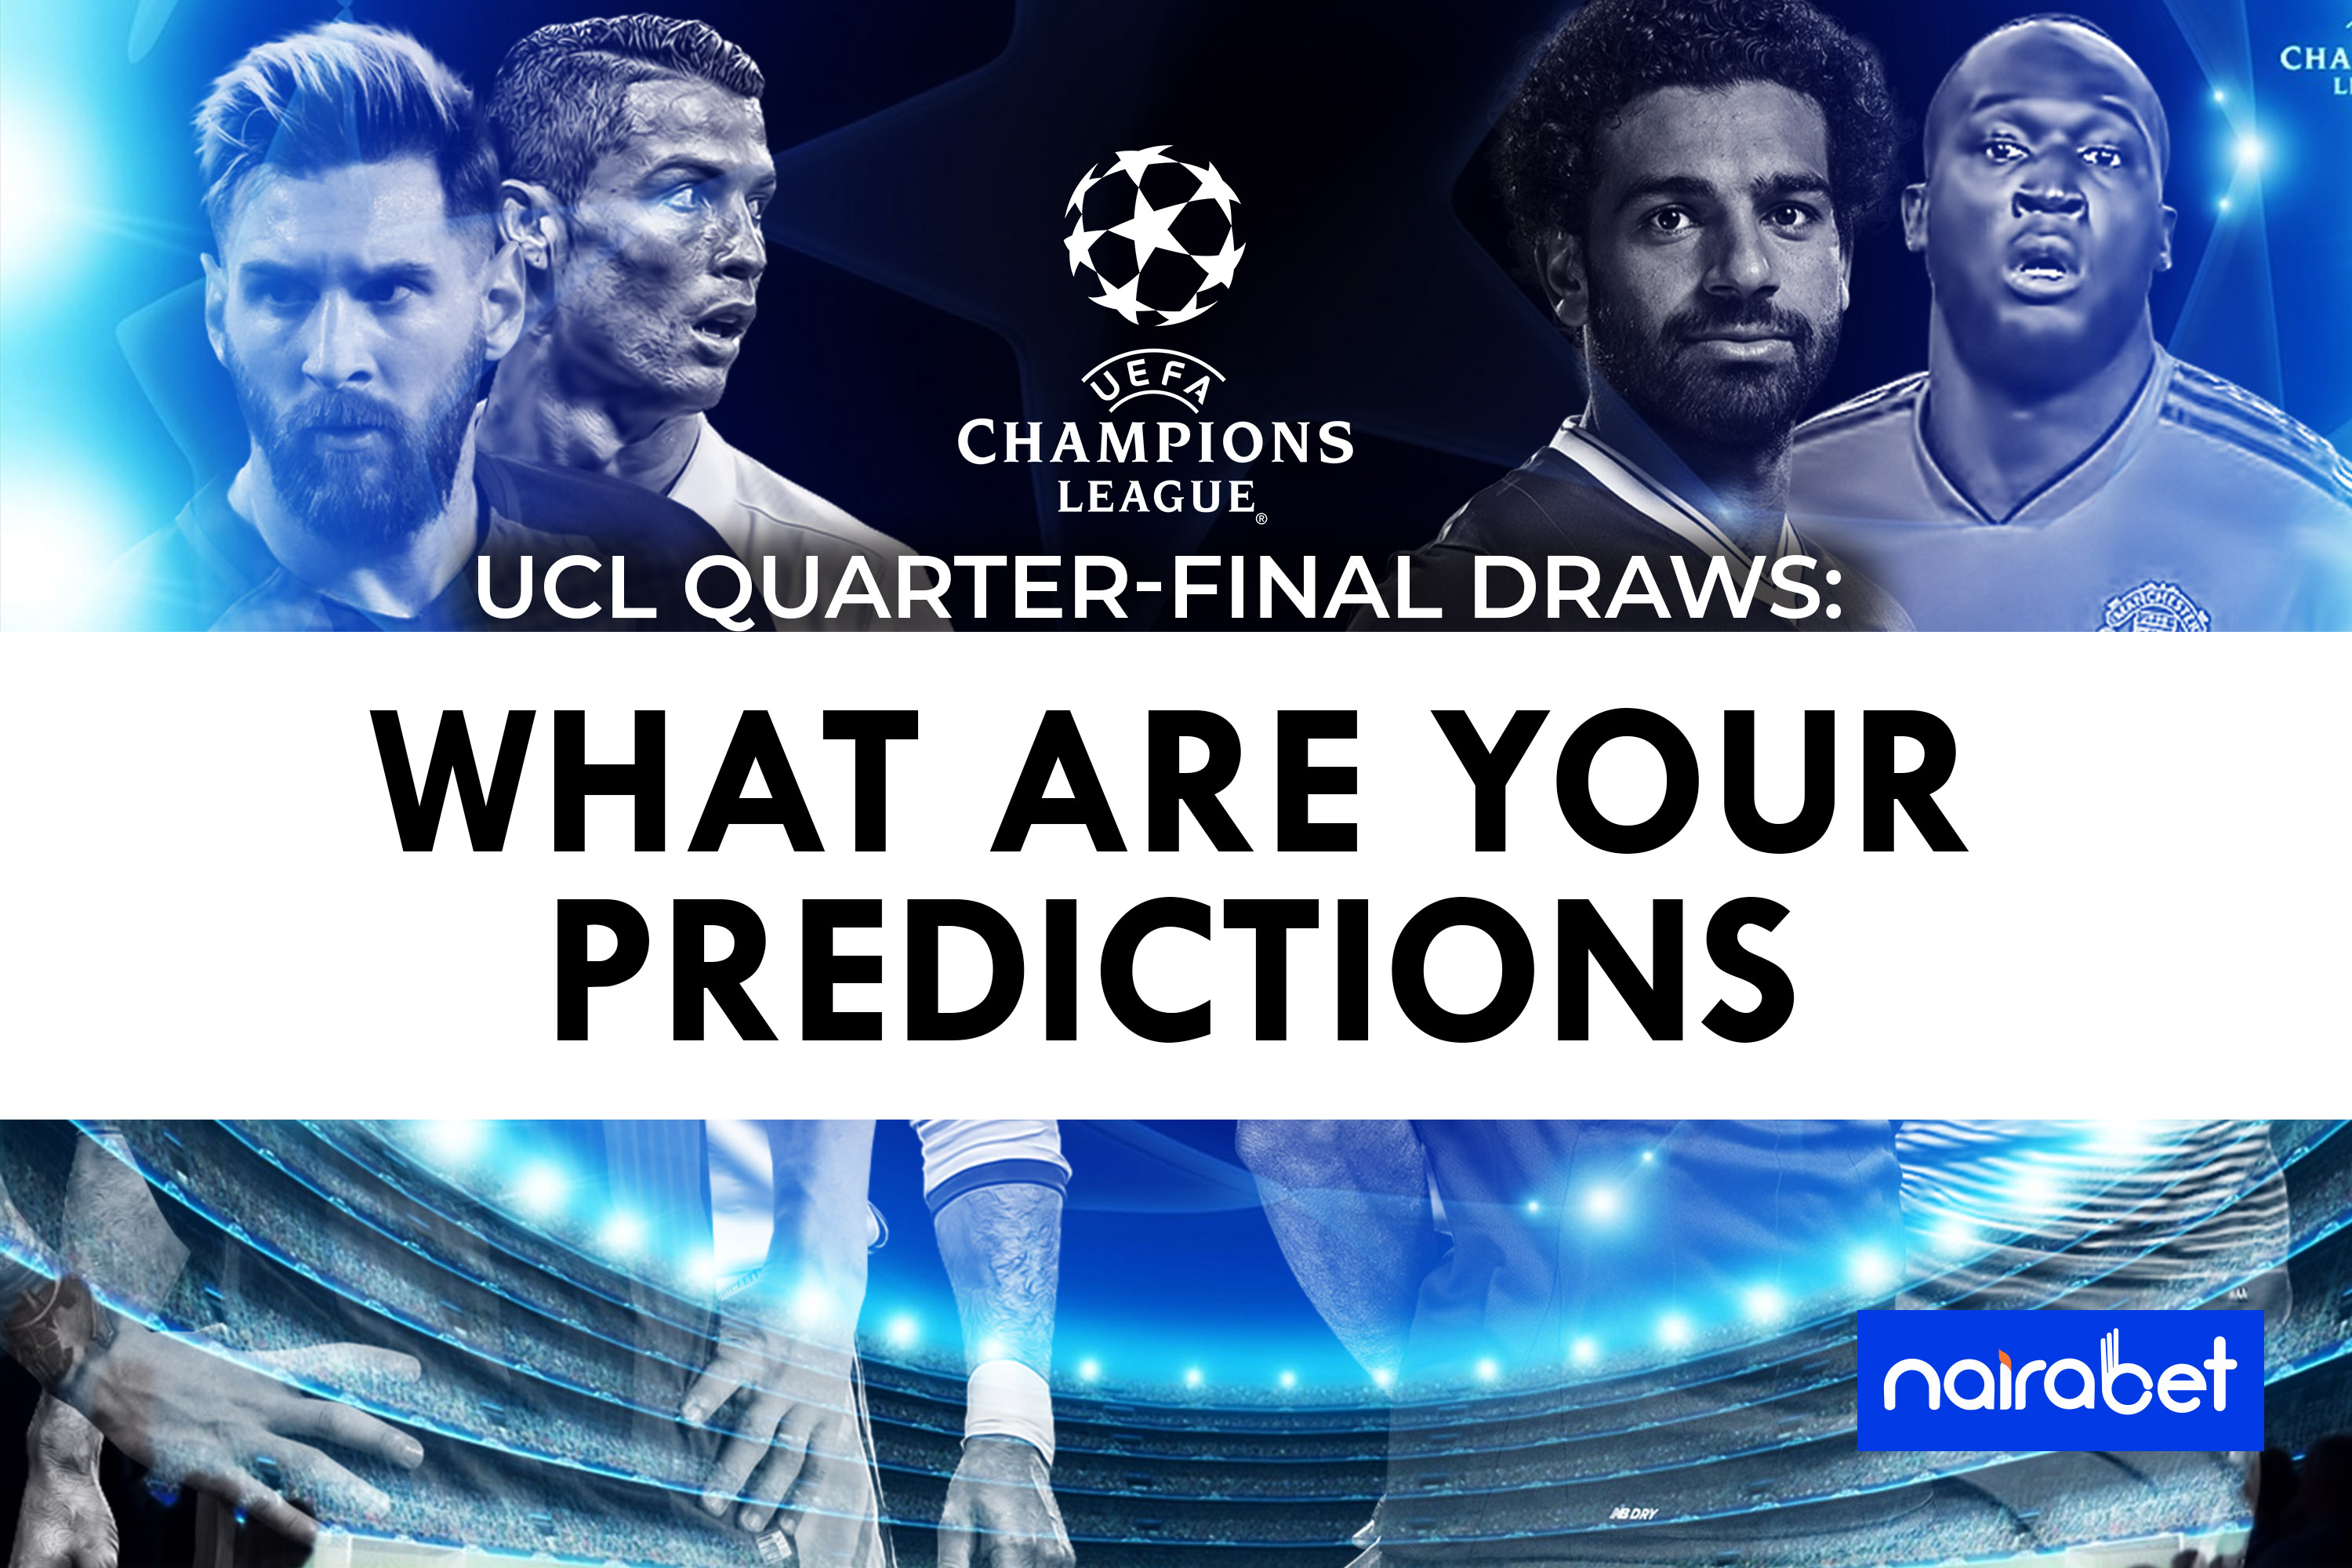 predict ucl quarter-final draws